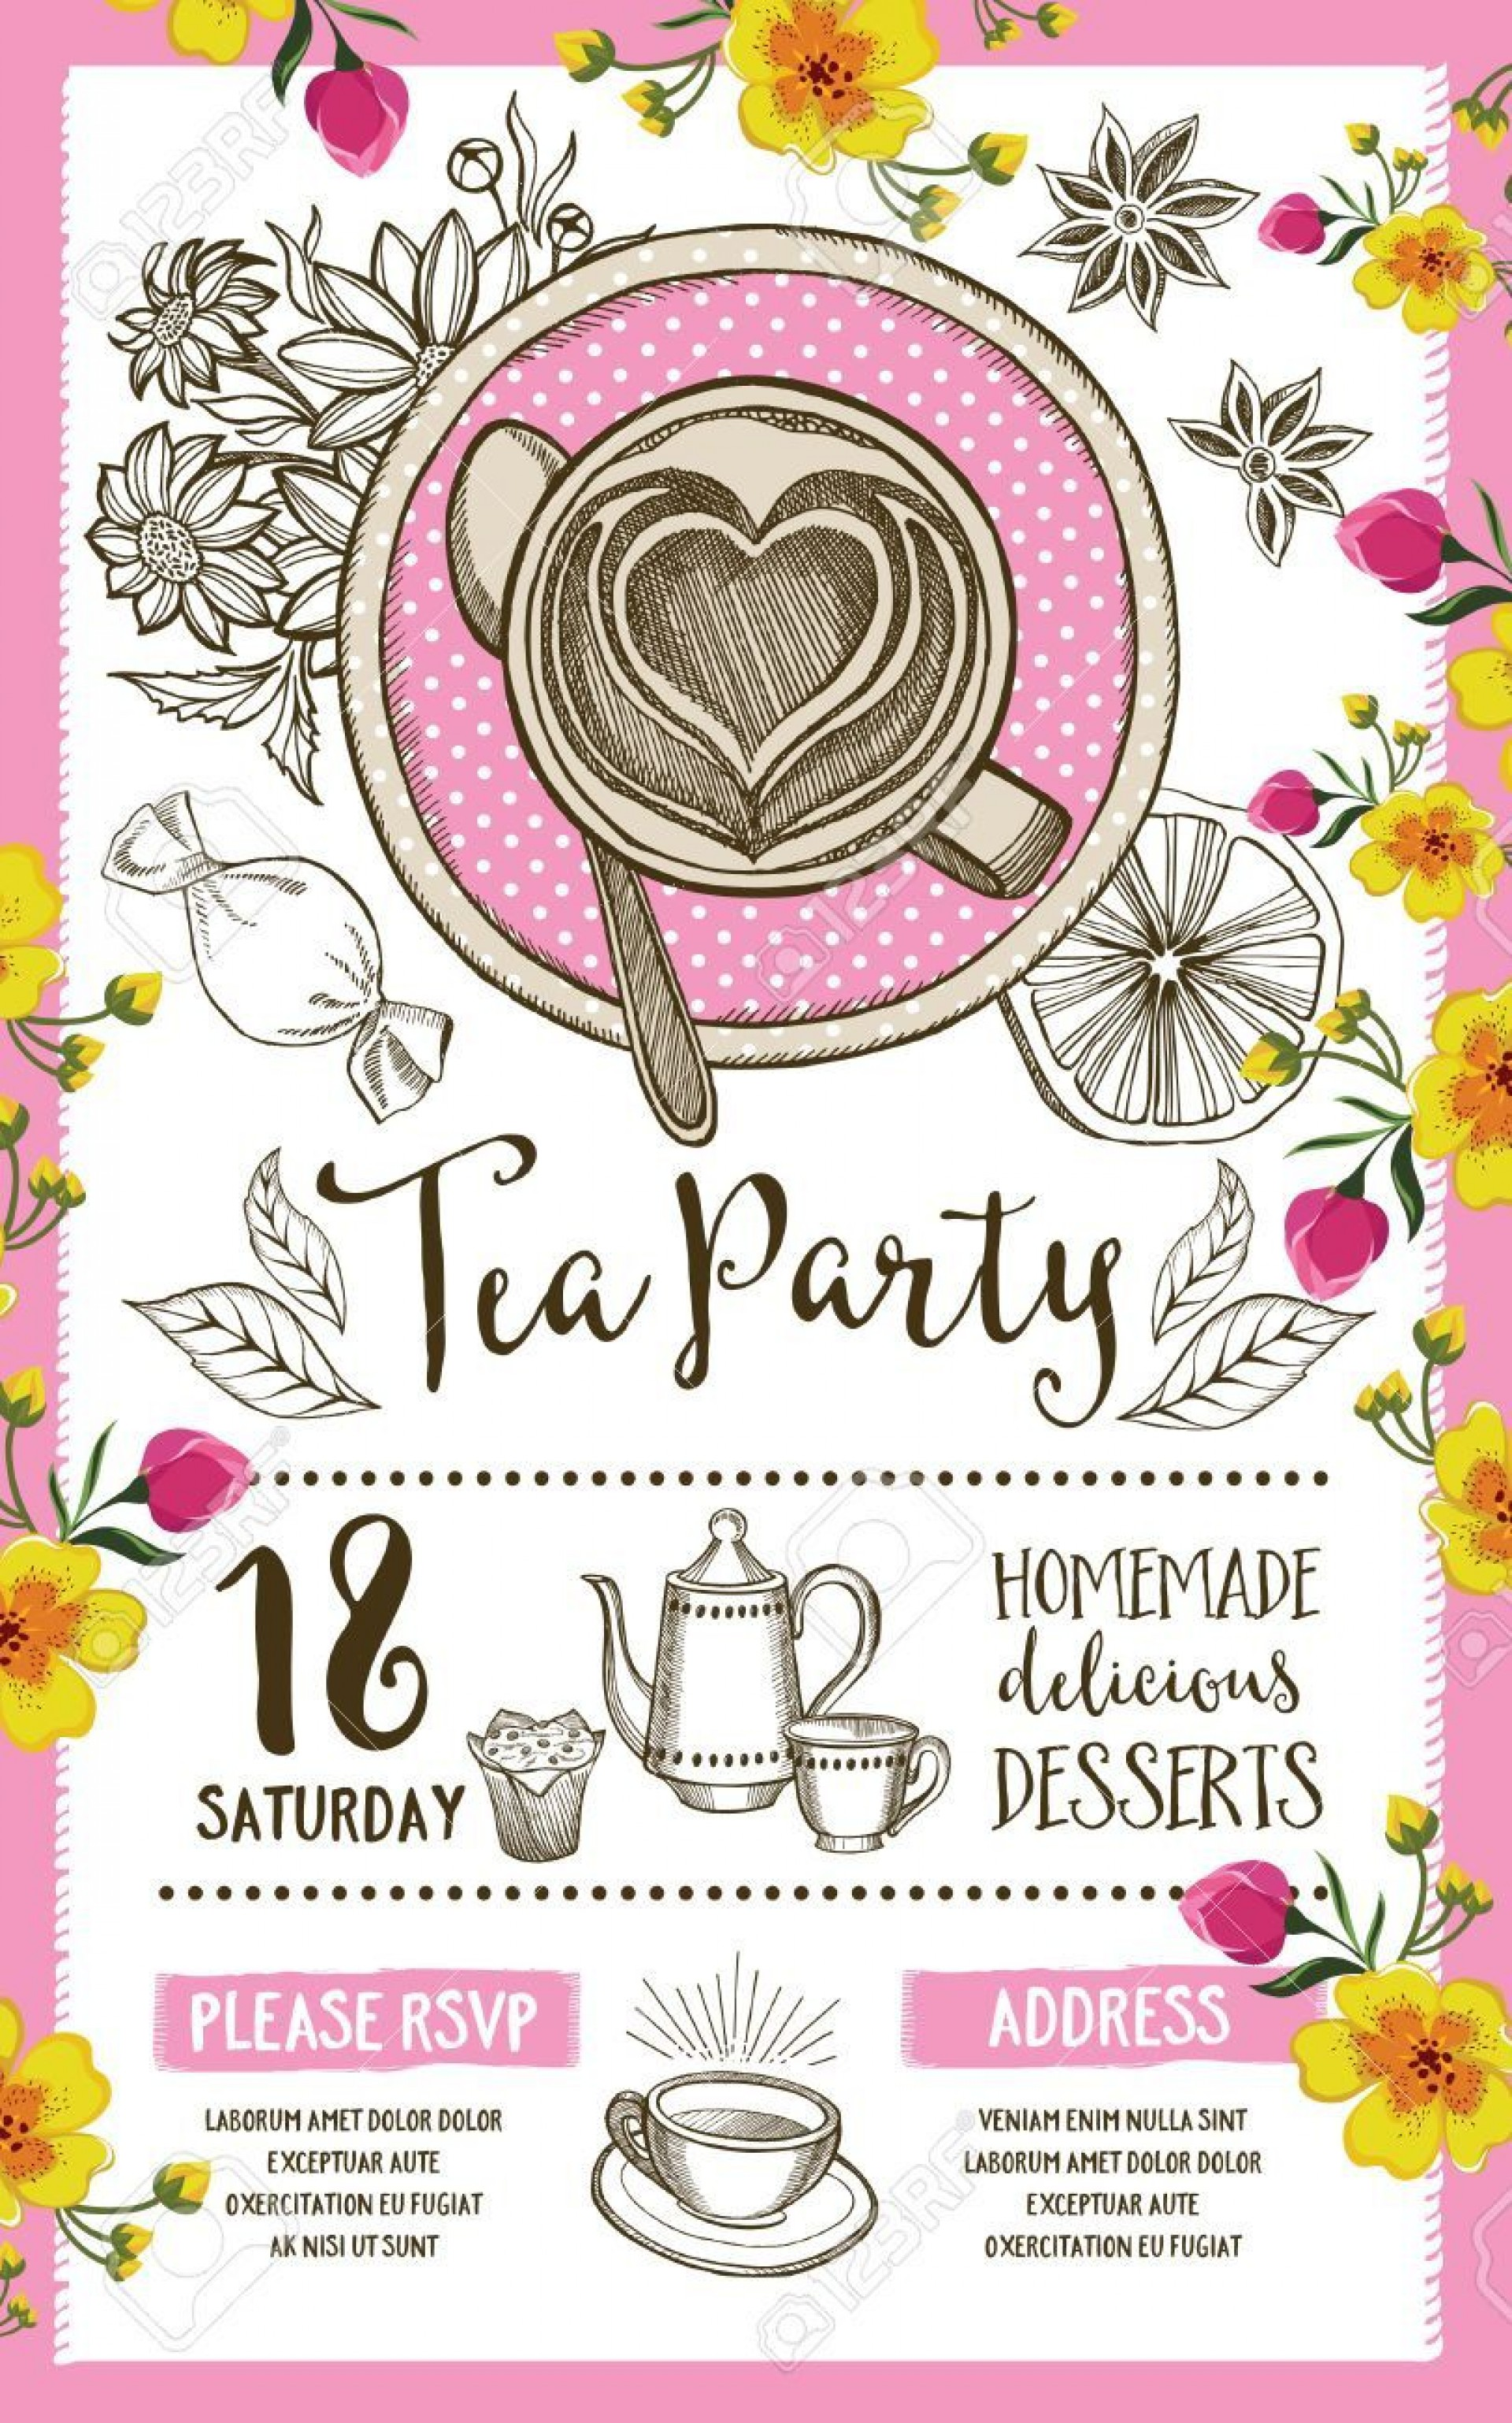 004 Wonderful Tea Party Invitation Template Inspiration  Wording Vintage Free Sample1920